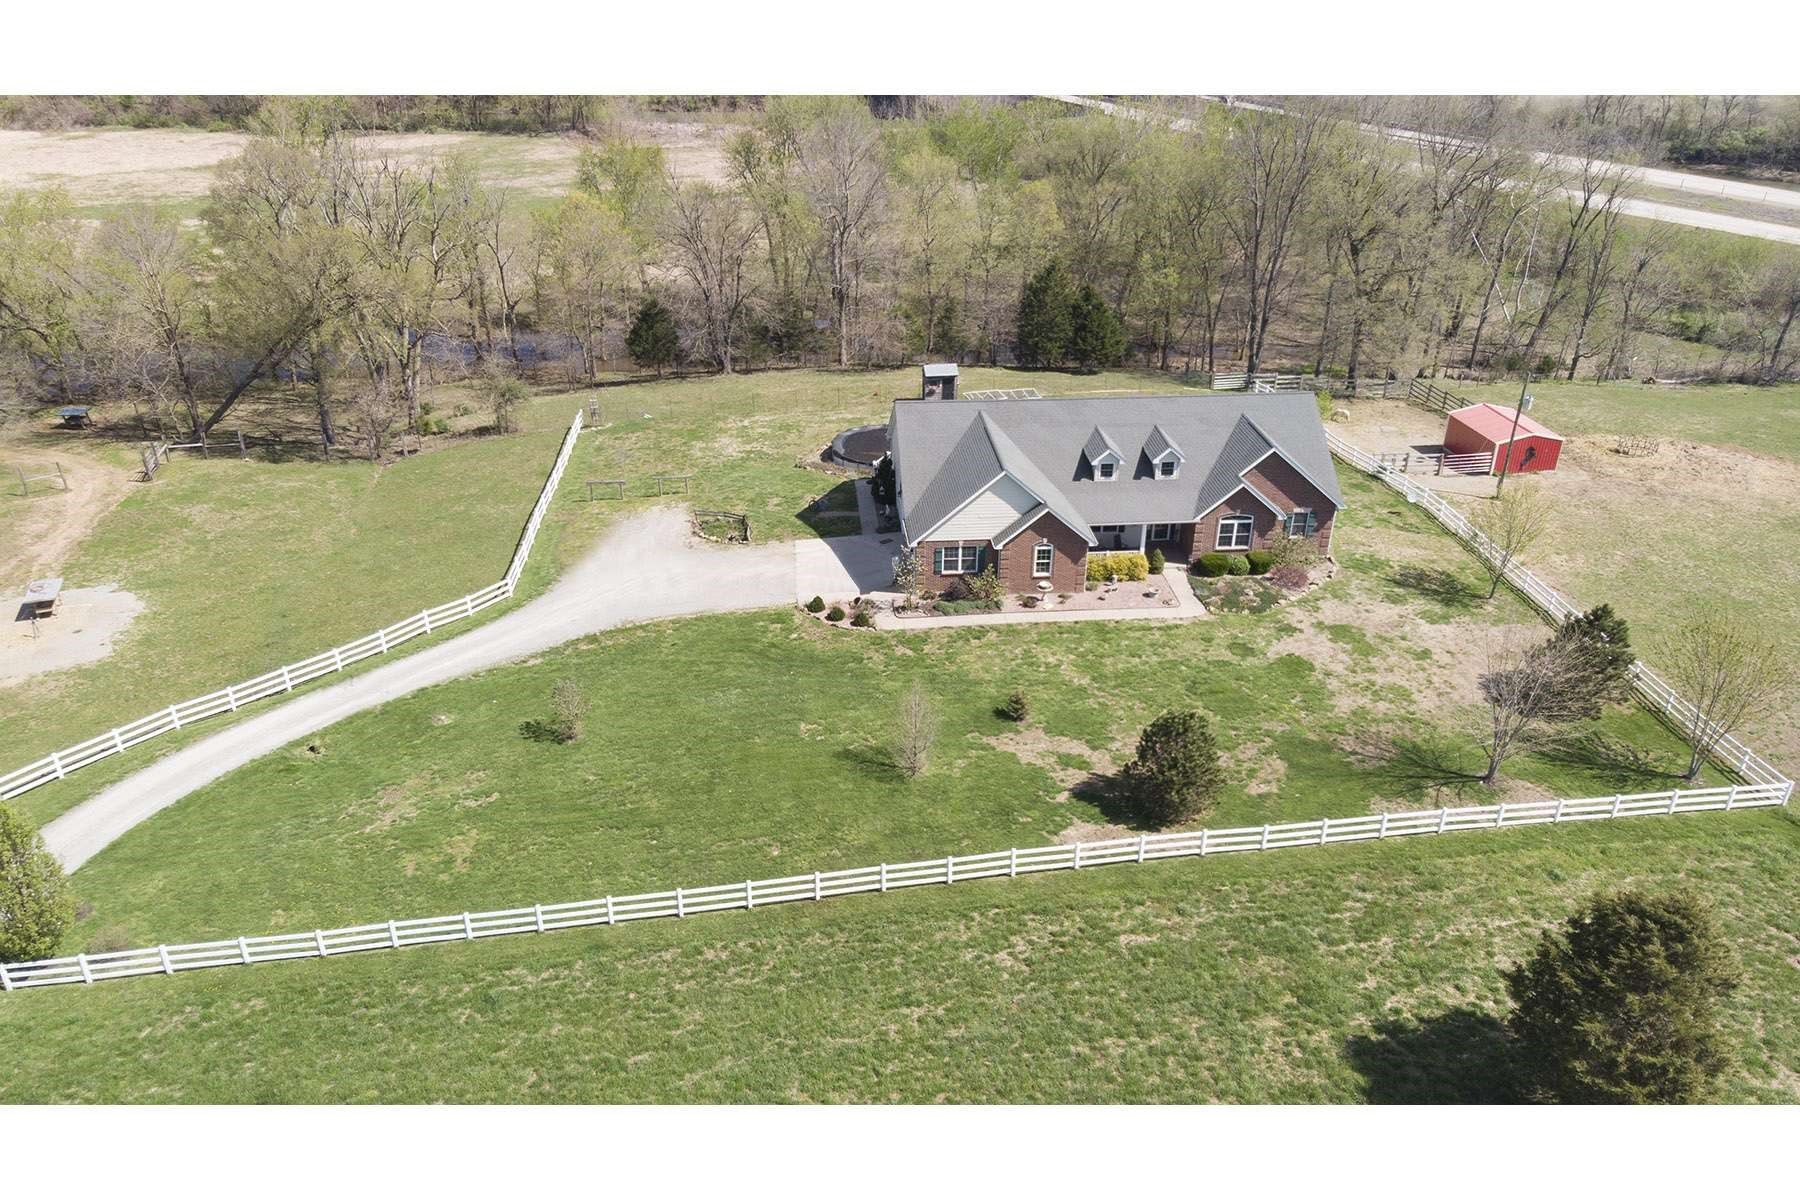 CUSTOM HOME & CATTLE FARM ON THE LITTLE ST. FRANCIS RIVER